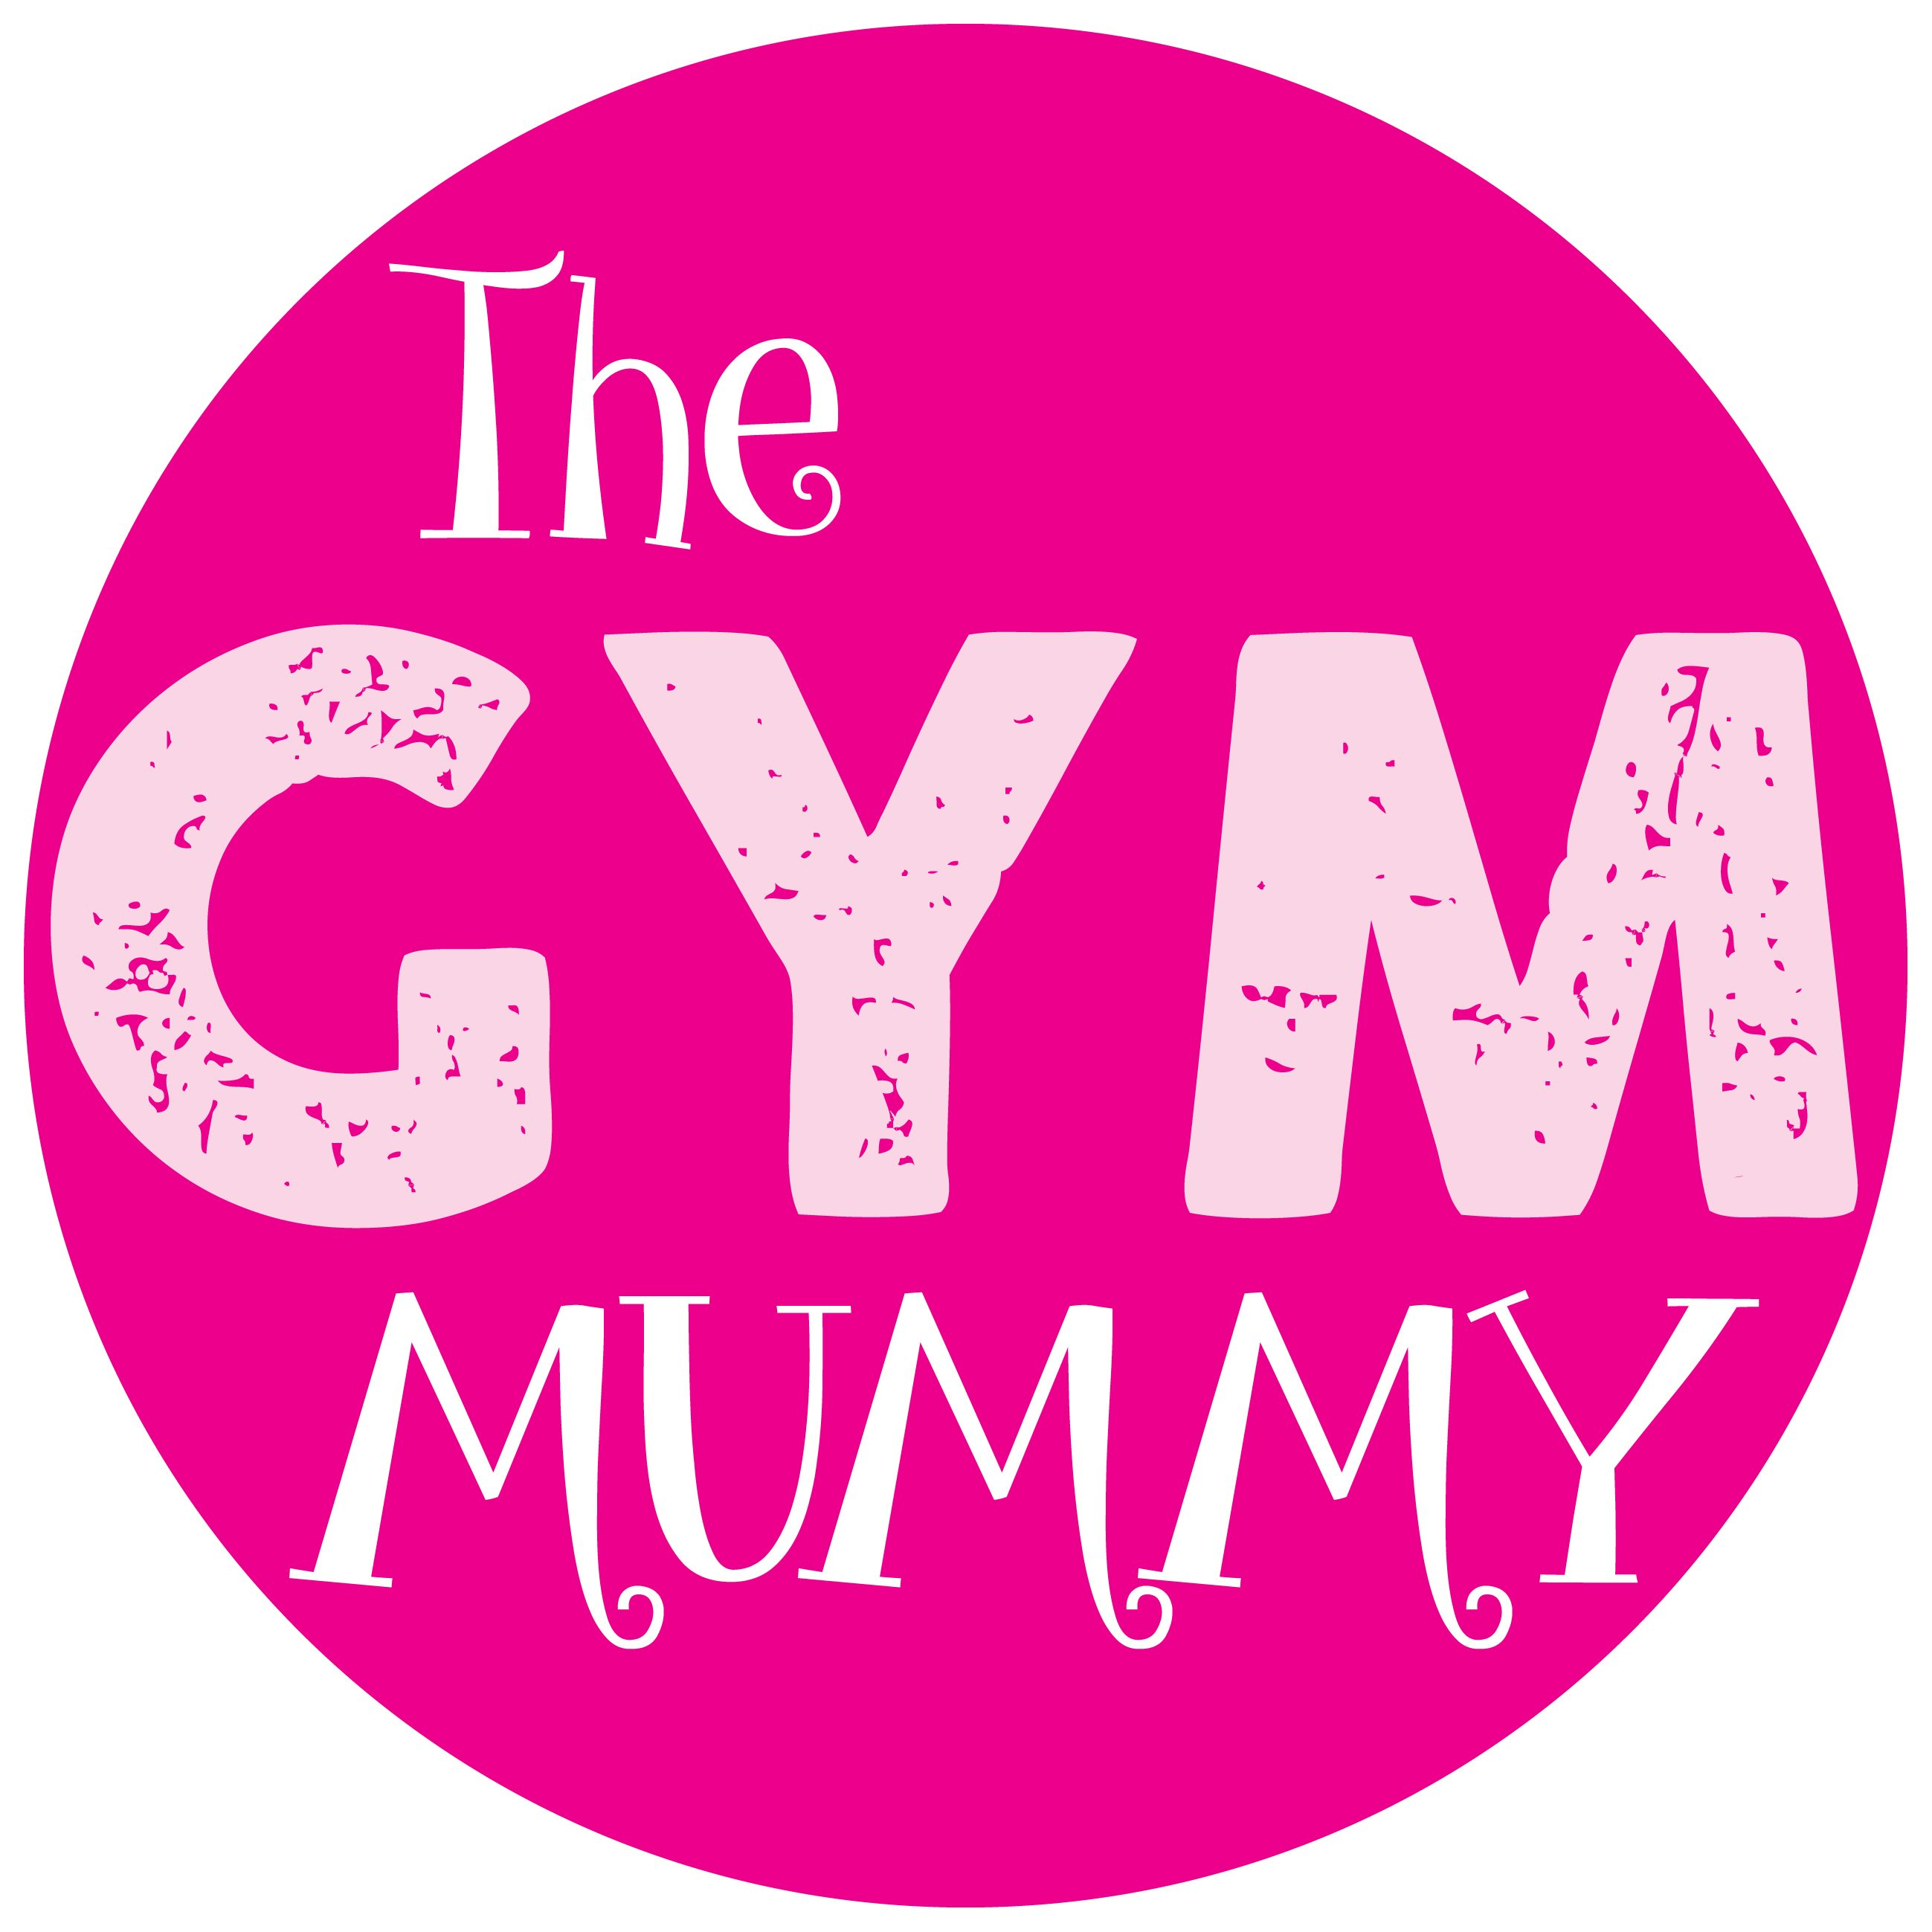 The Gym Mummy